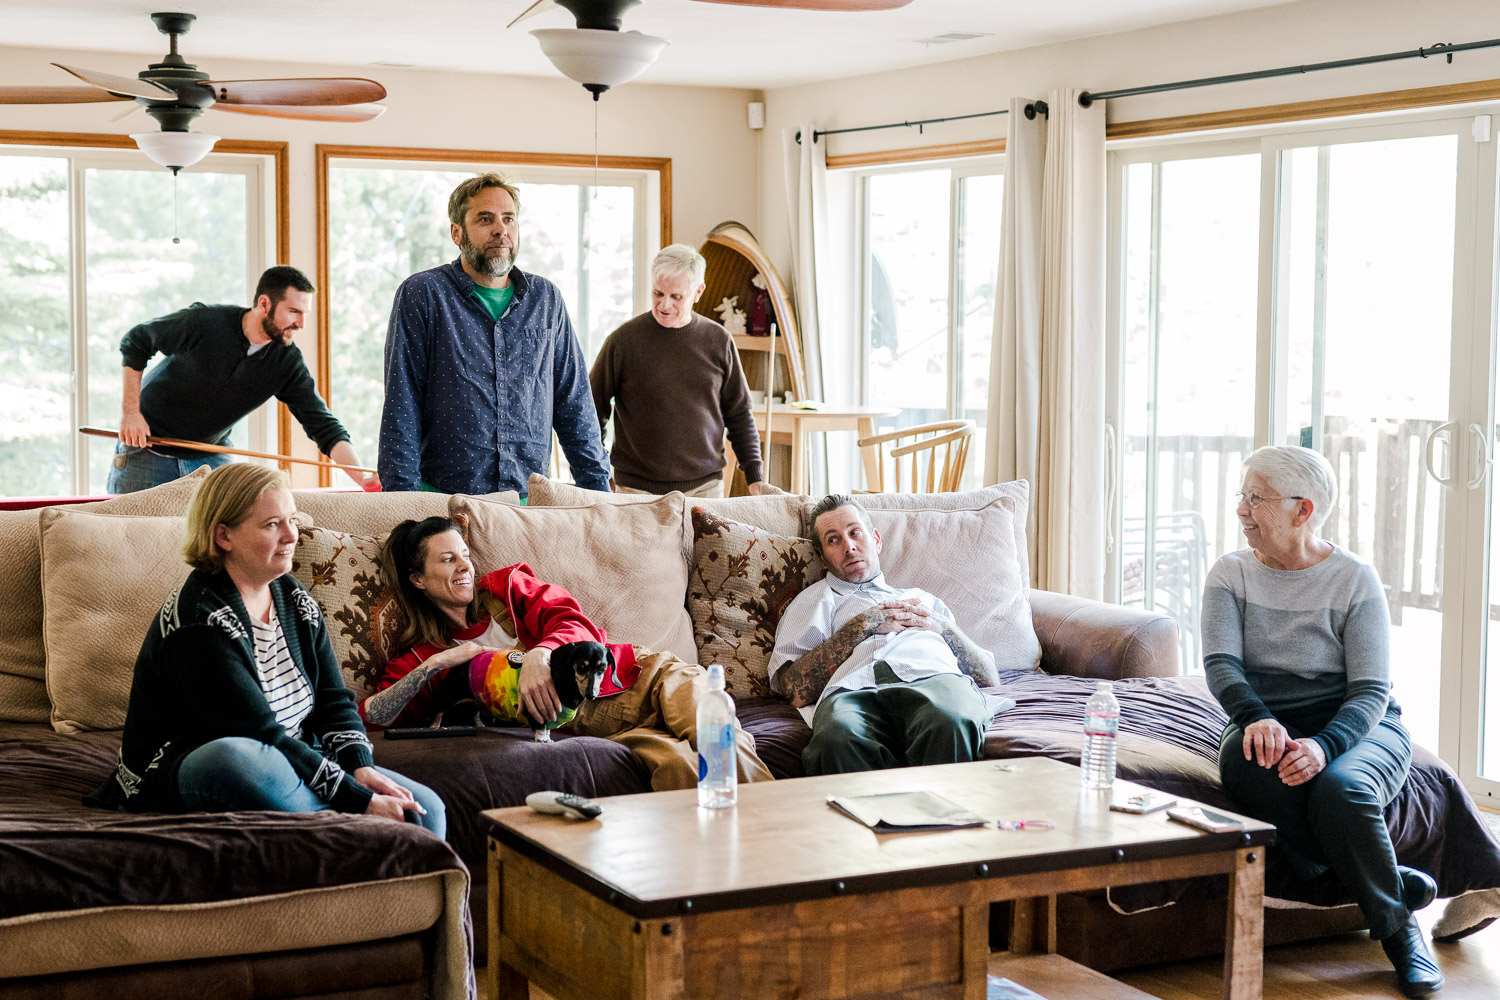 A family gathers in a living room.